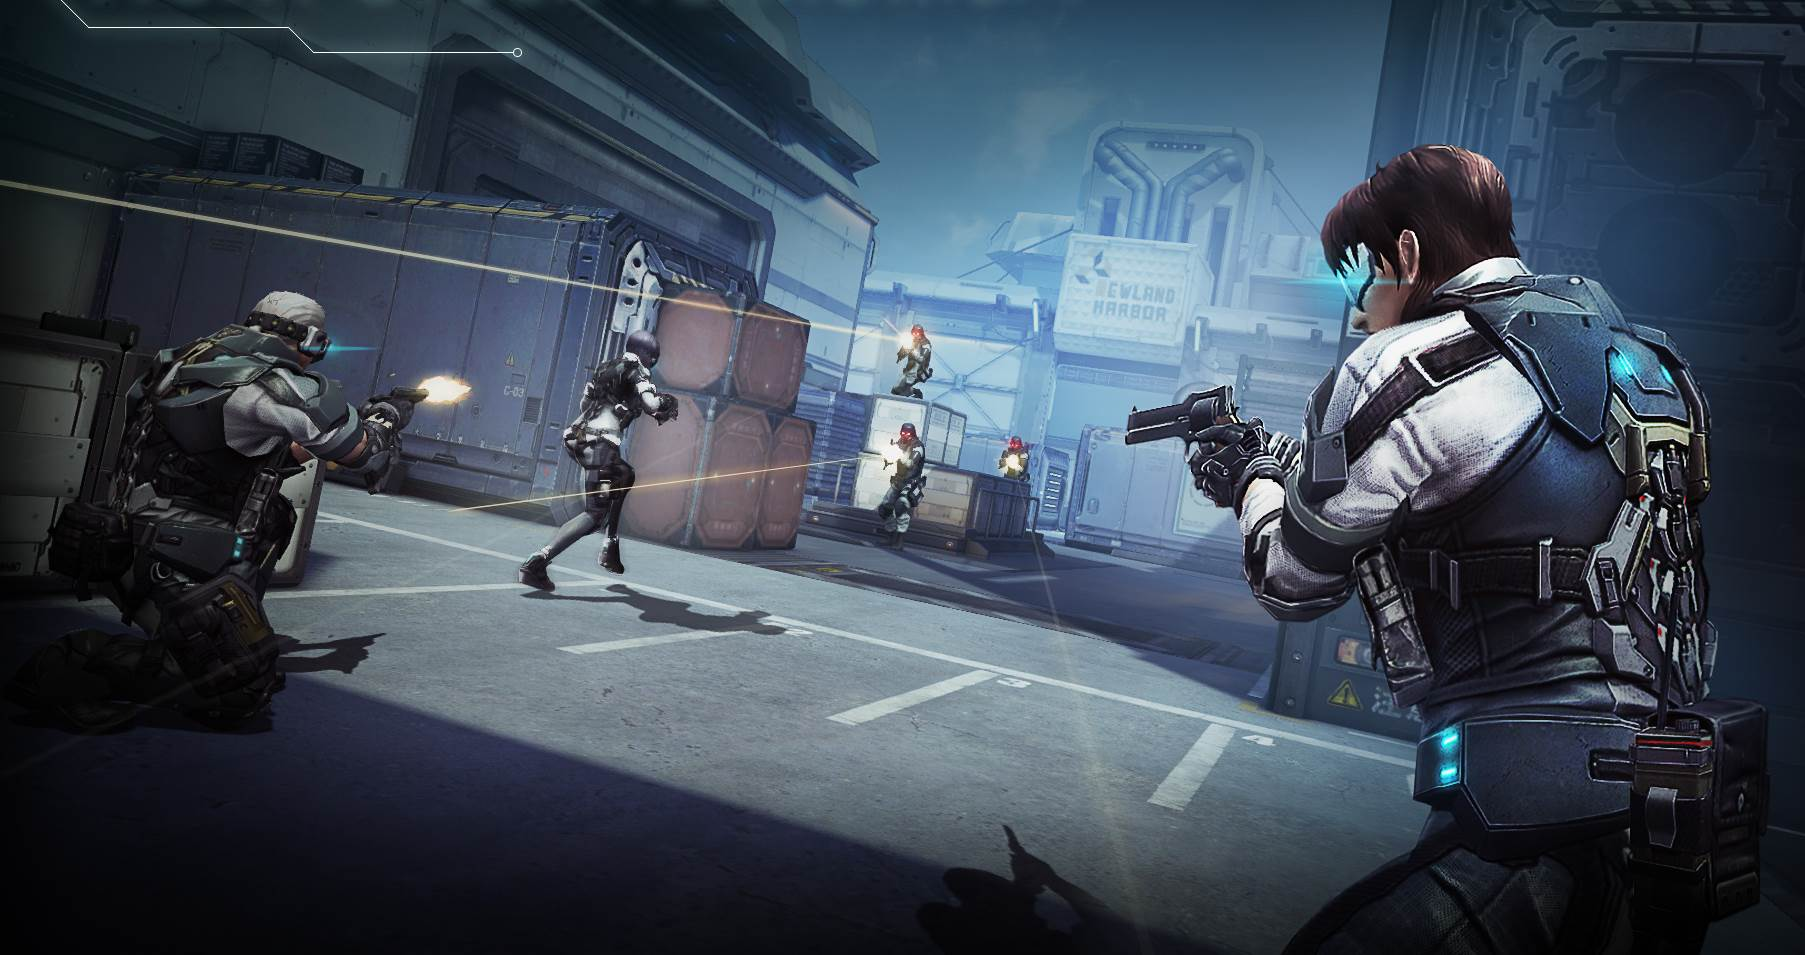 Free To Play Fps Ghost In The Shell Stand Alone Complex First Assault Enters Open Beta This Week Pc Gamer